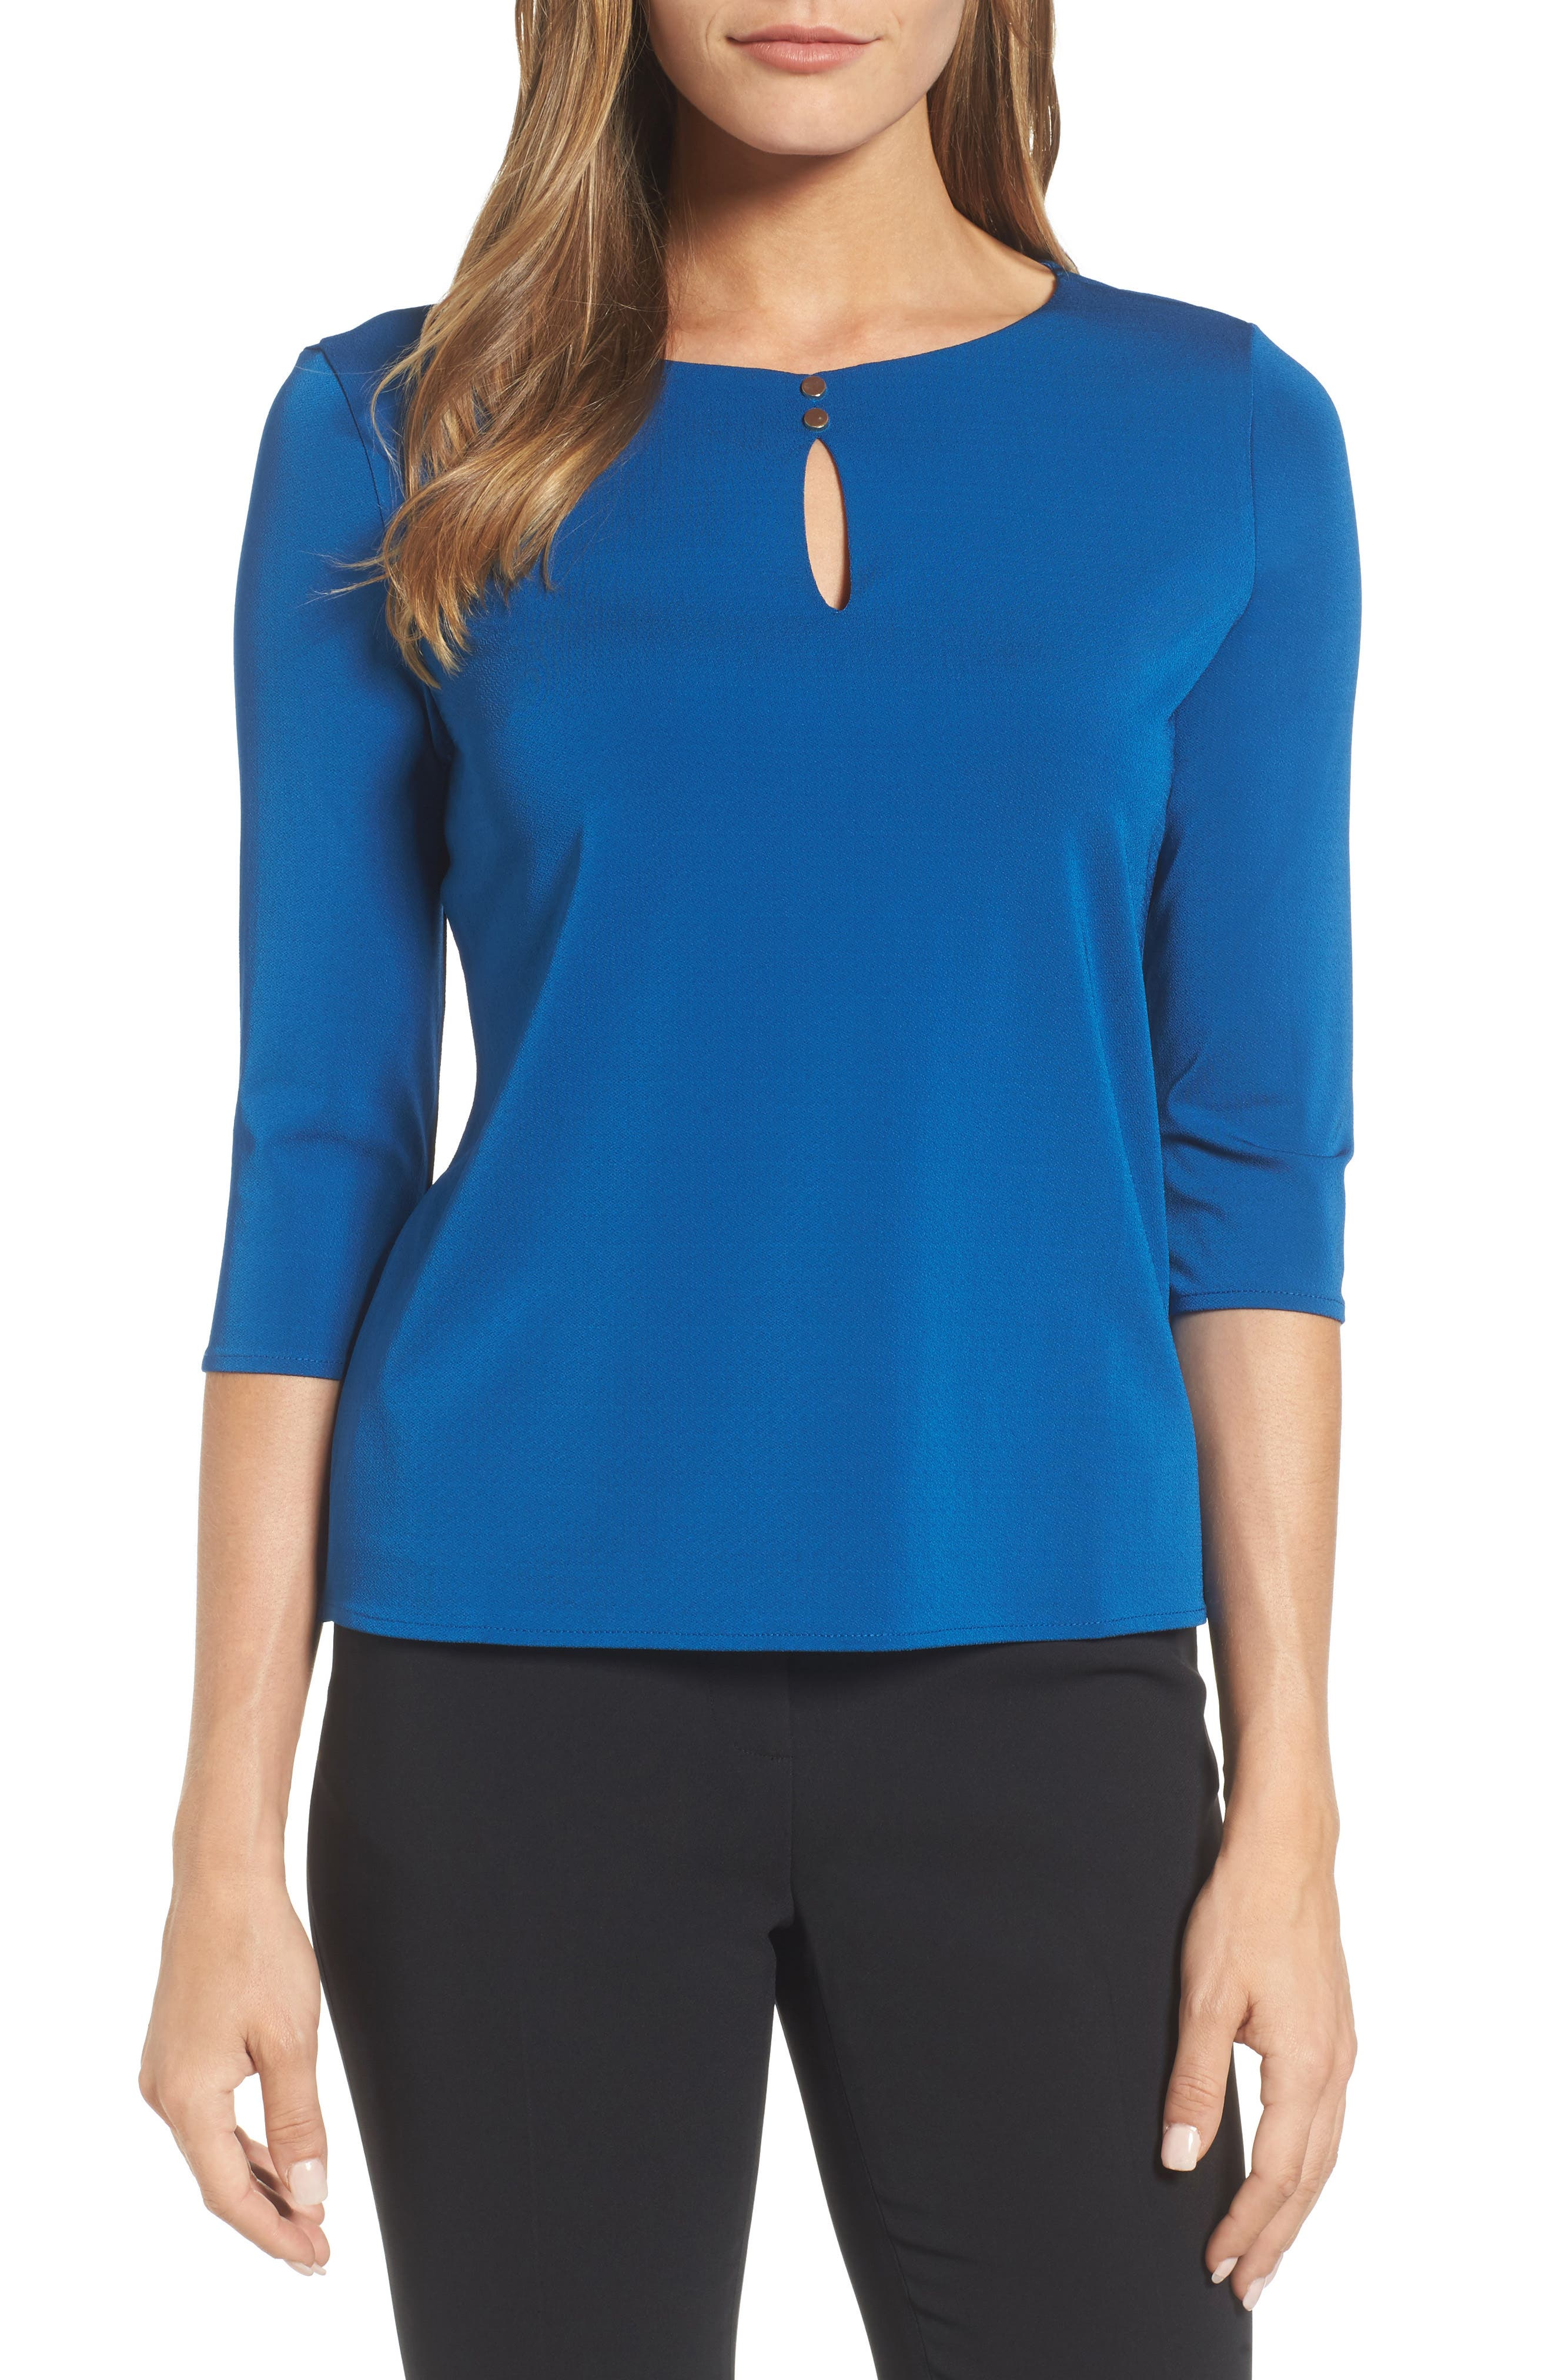 Main Image - BOSS Epina Keyhole Jersey Top (Nordstrom Exclusive)